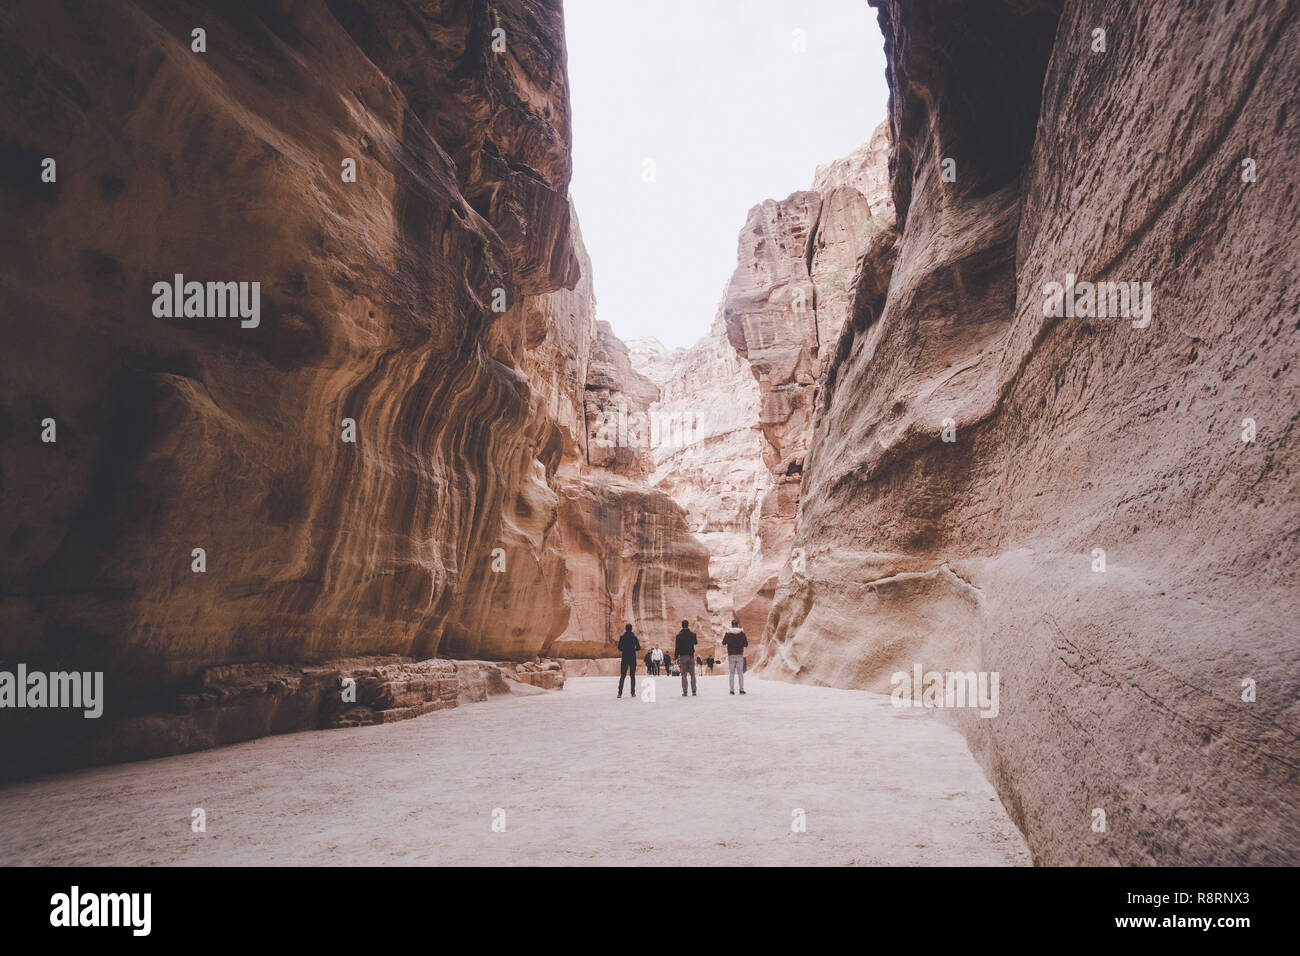 Siq, the narrow slot-canyon that serves as the entrance passage to the hidden city of Petra, Jordan, seen here with tourists walking. UNESCO World Her Stock Photo